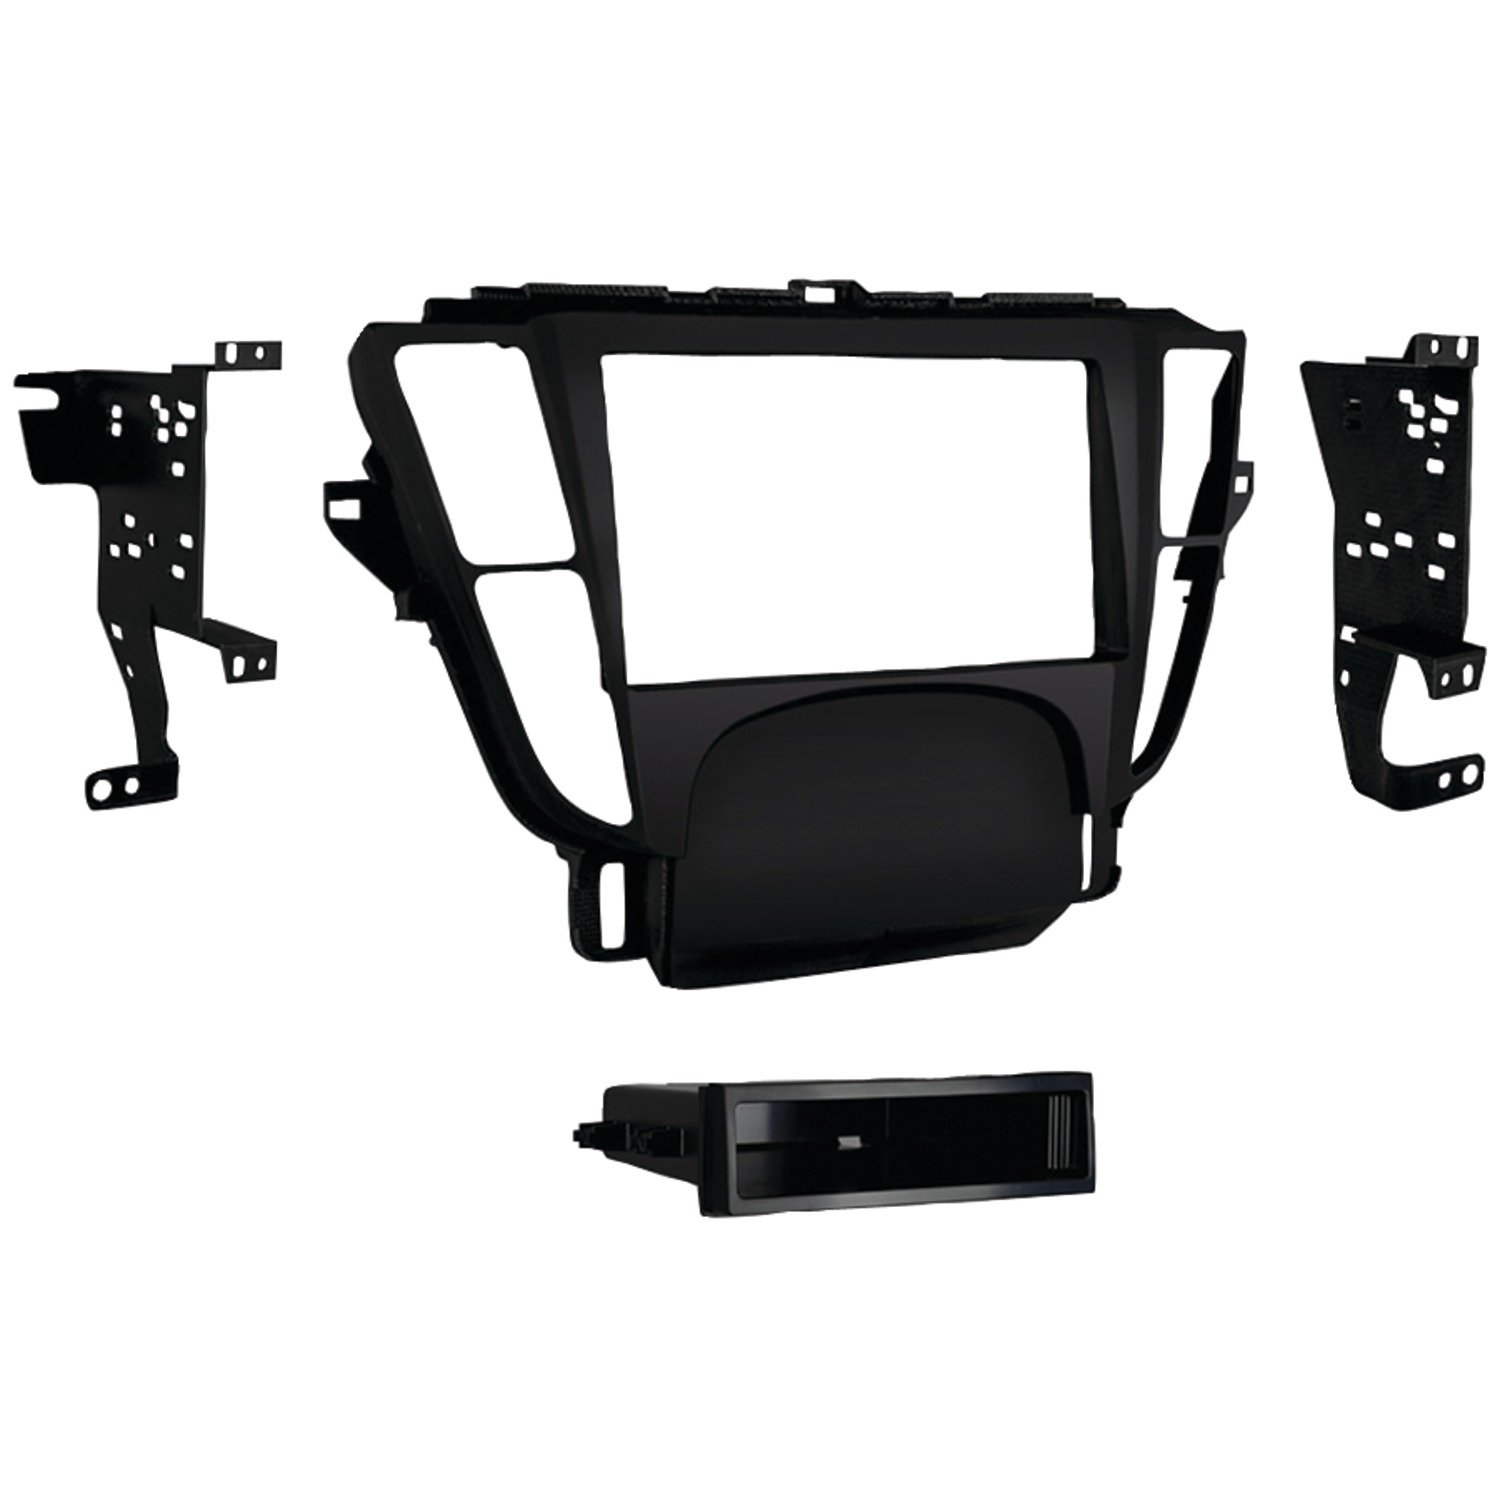 Metra 99-7808B Single/Double Din Dash Kit for 2009 - 2014 Acura TL (Black)